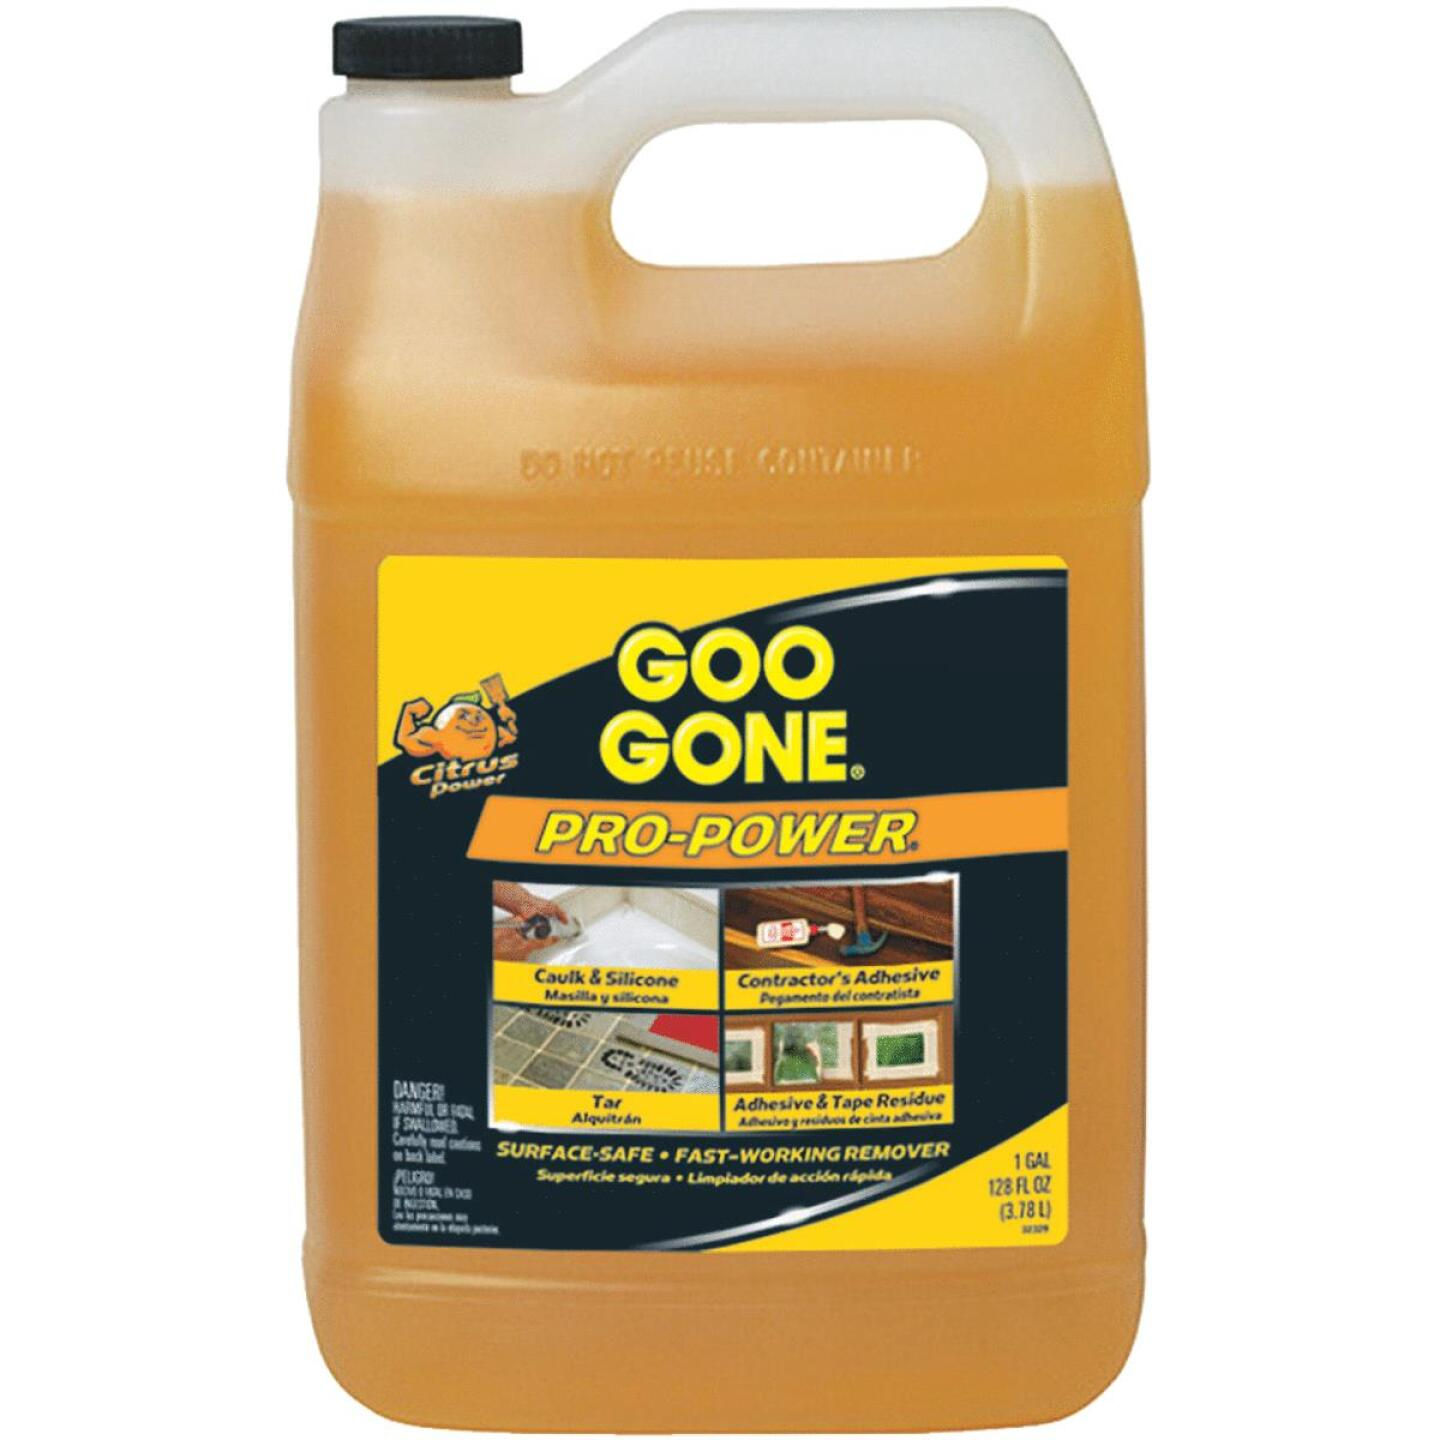 Goo Gone 1 Gal. Pro-Power Adhesive Remover Image 122